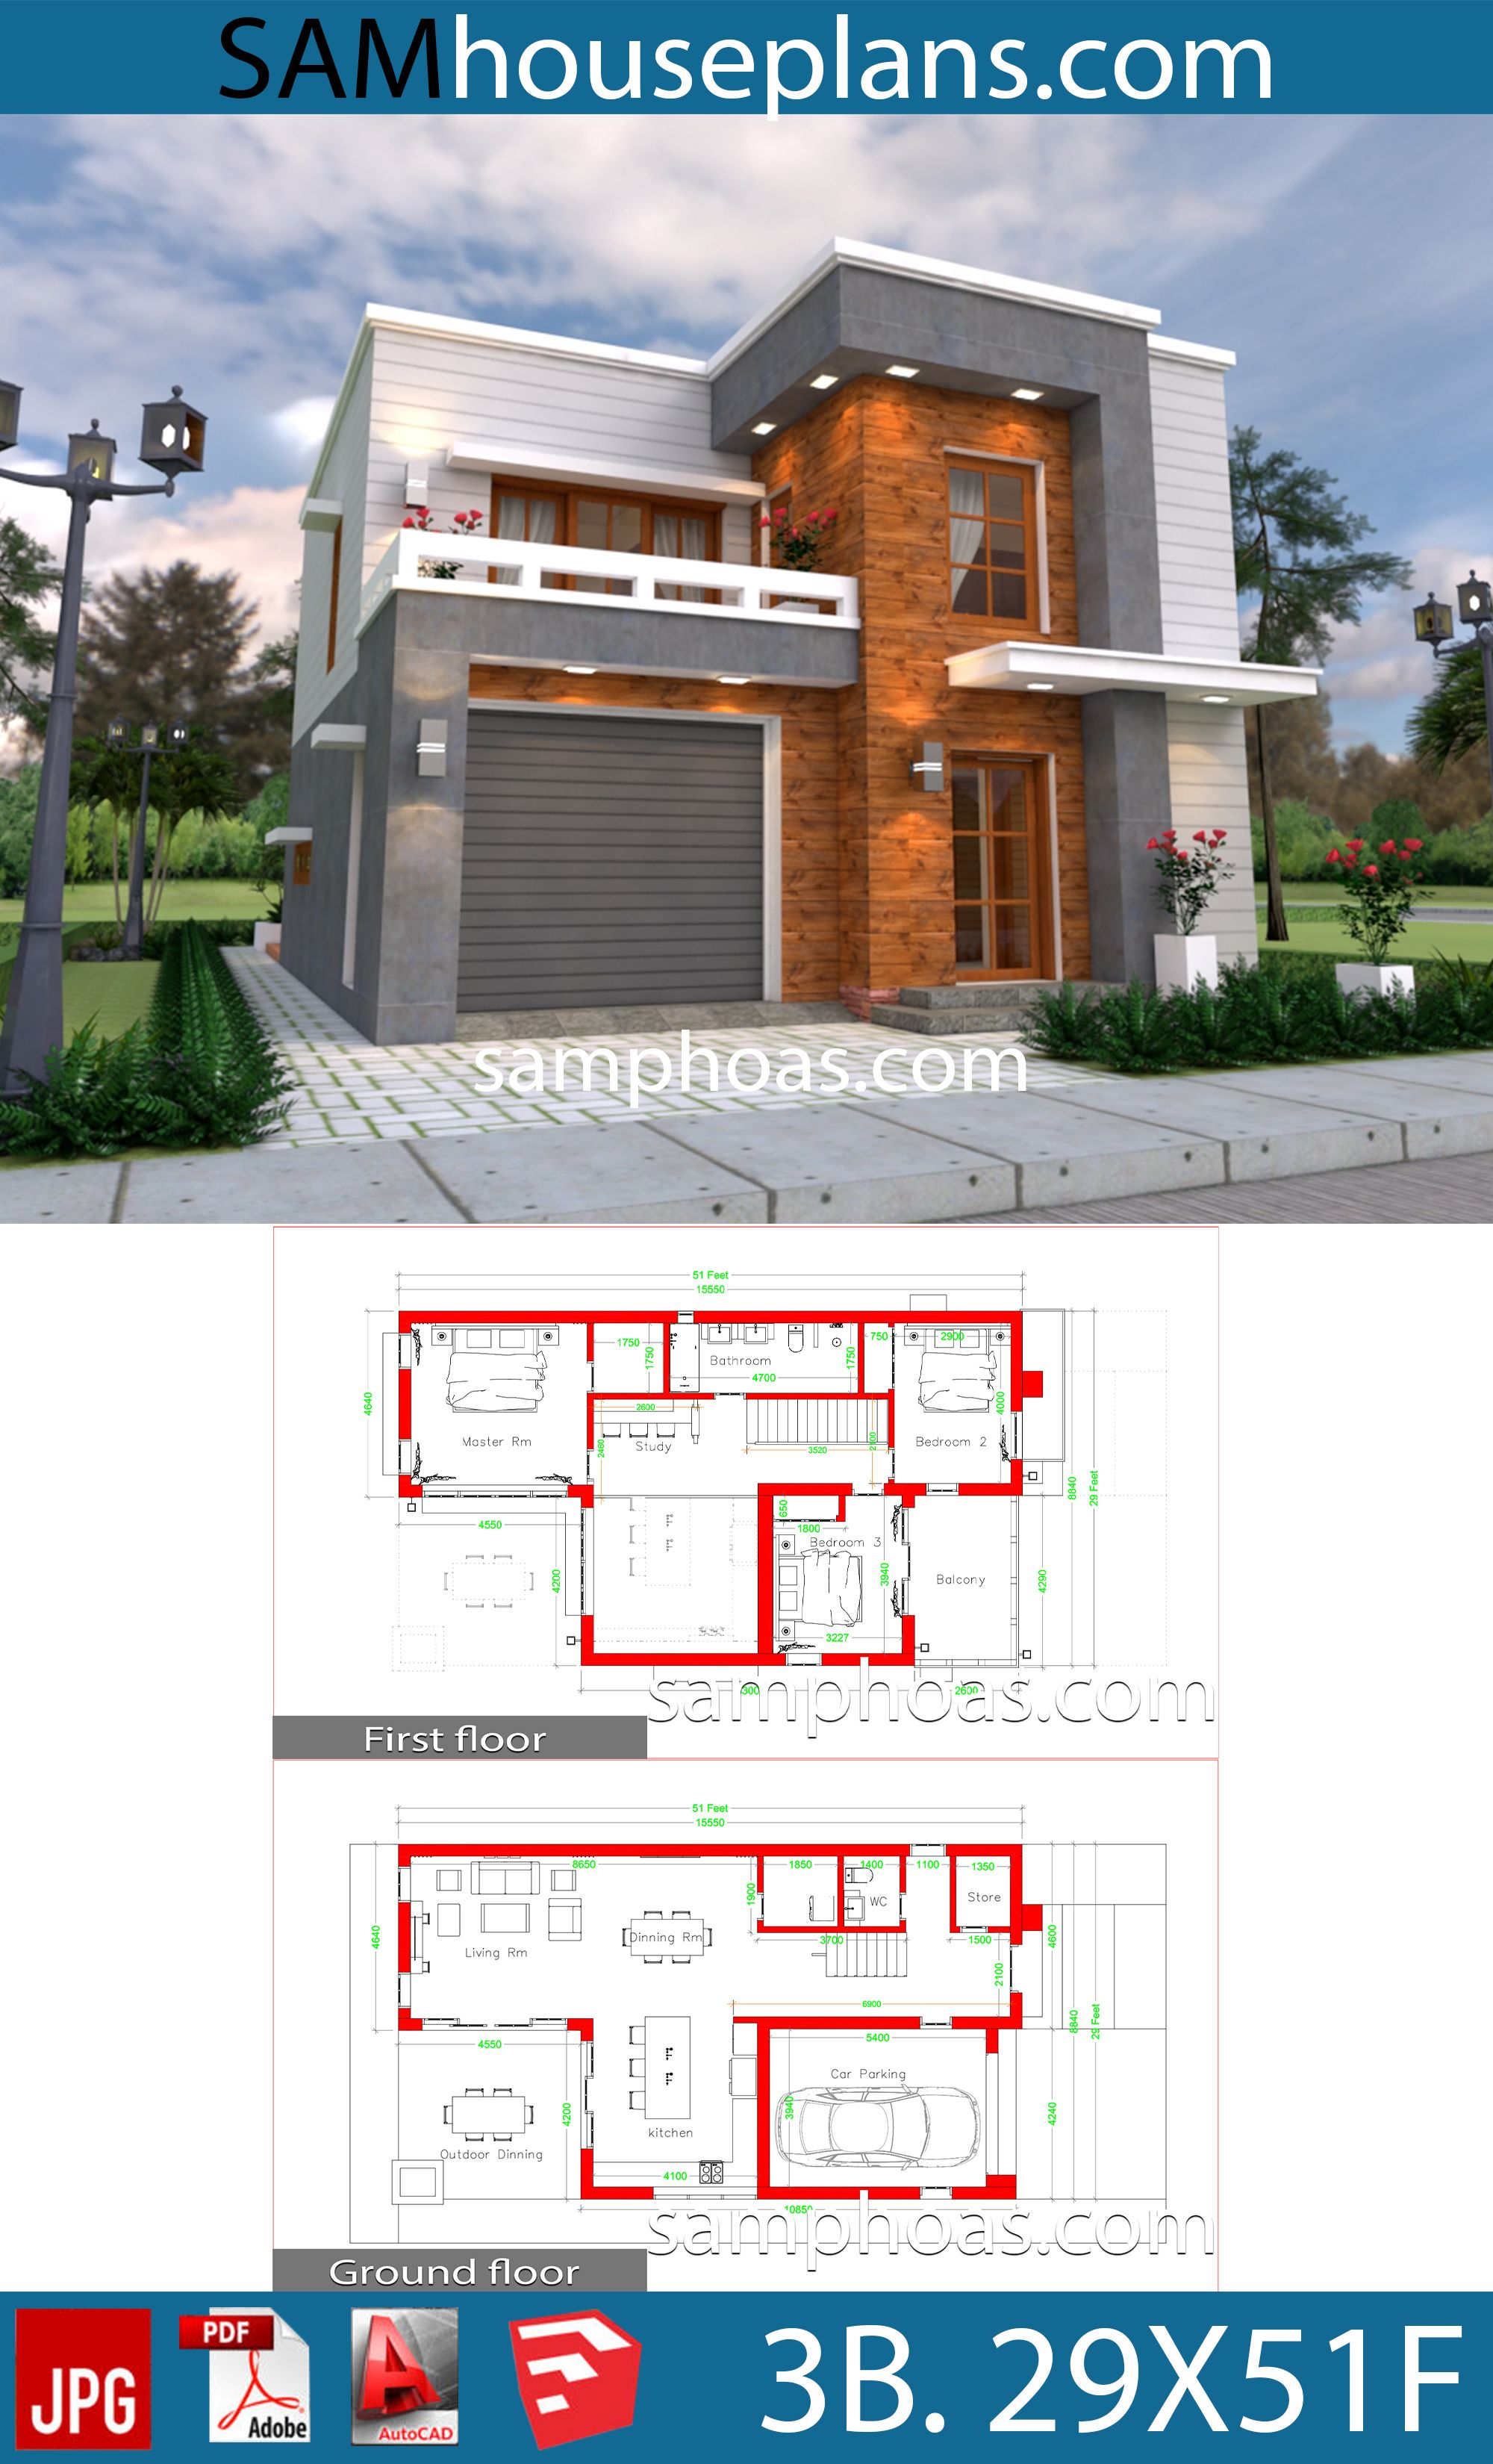 House Design Plans 29x51 Feet With 3 Bedrooms House Plans Free Downloads Architectural House Plans Architectural Design House Plans Home Design Plans